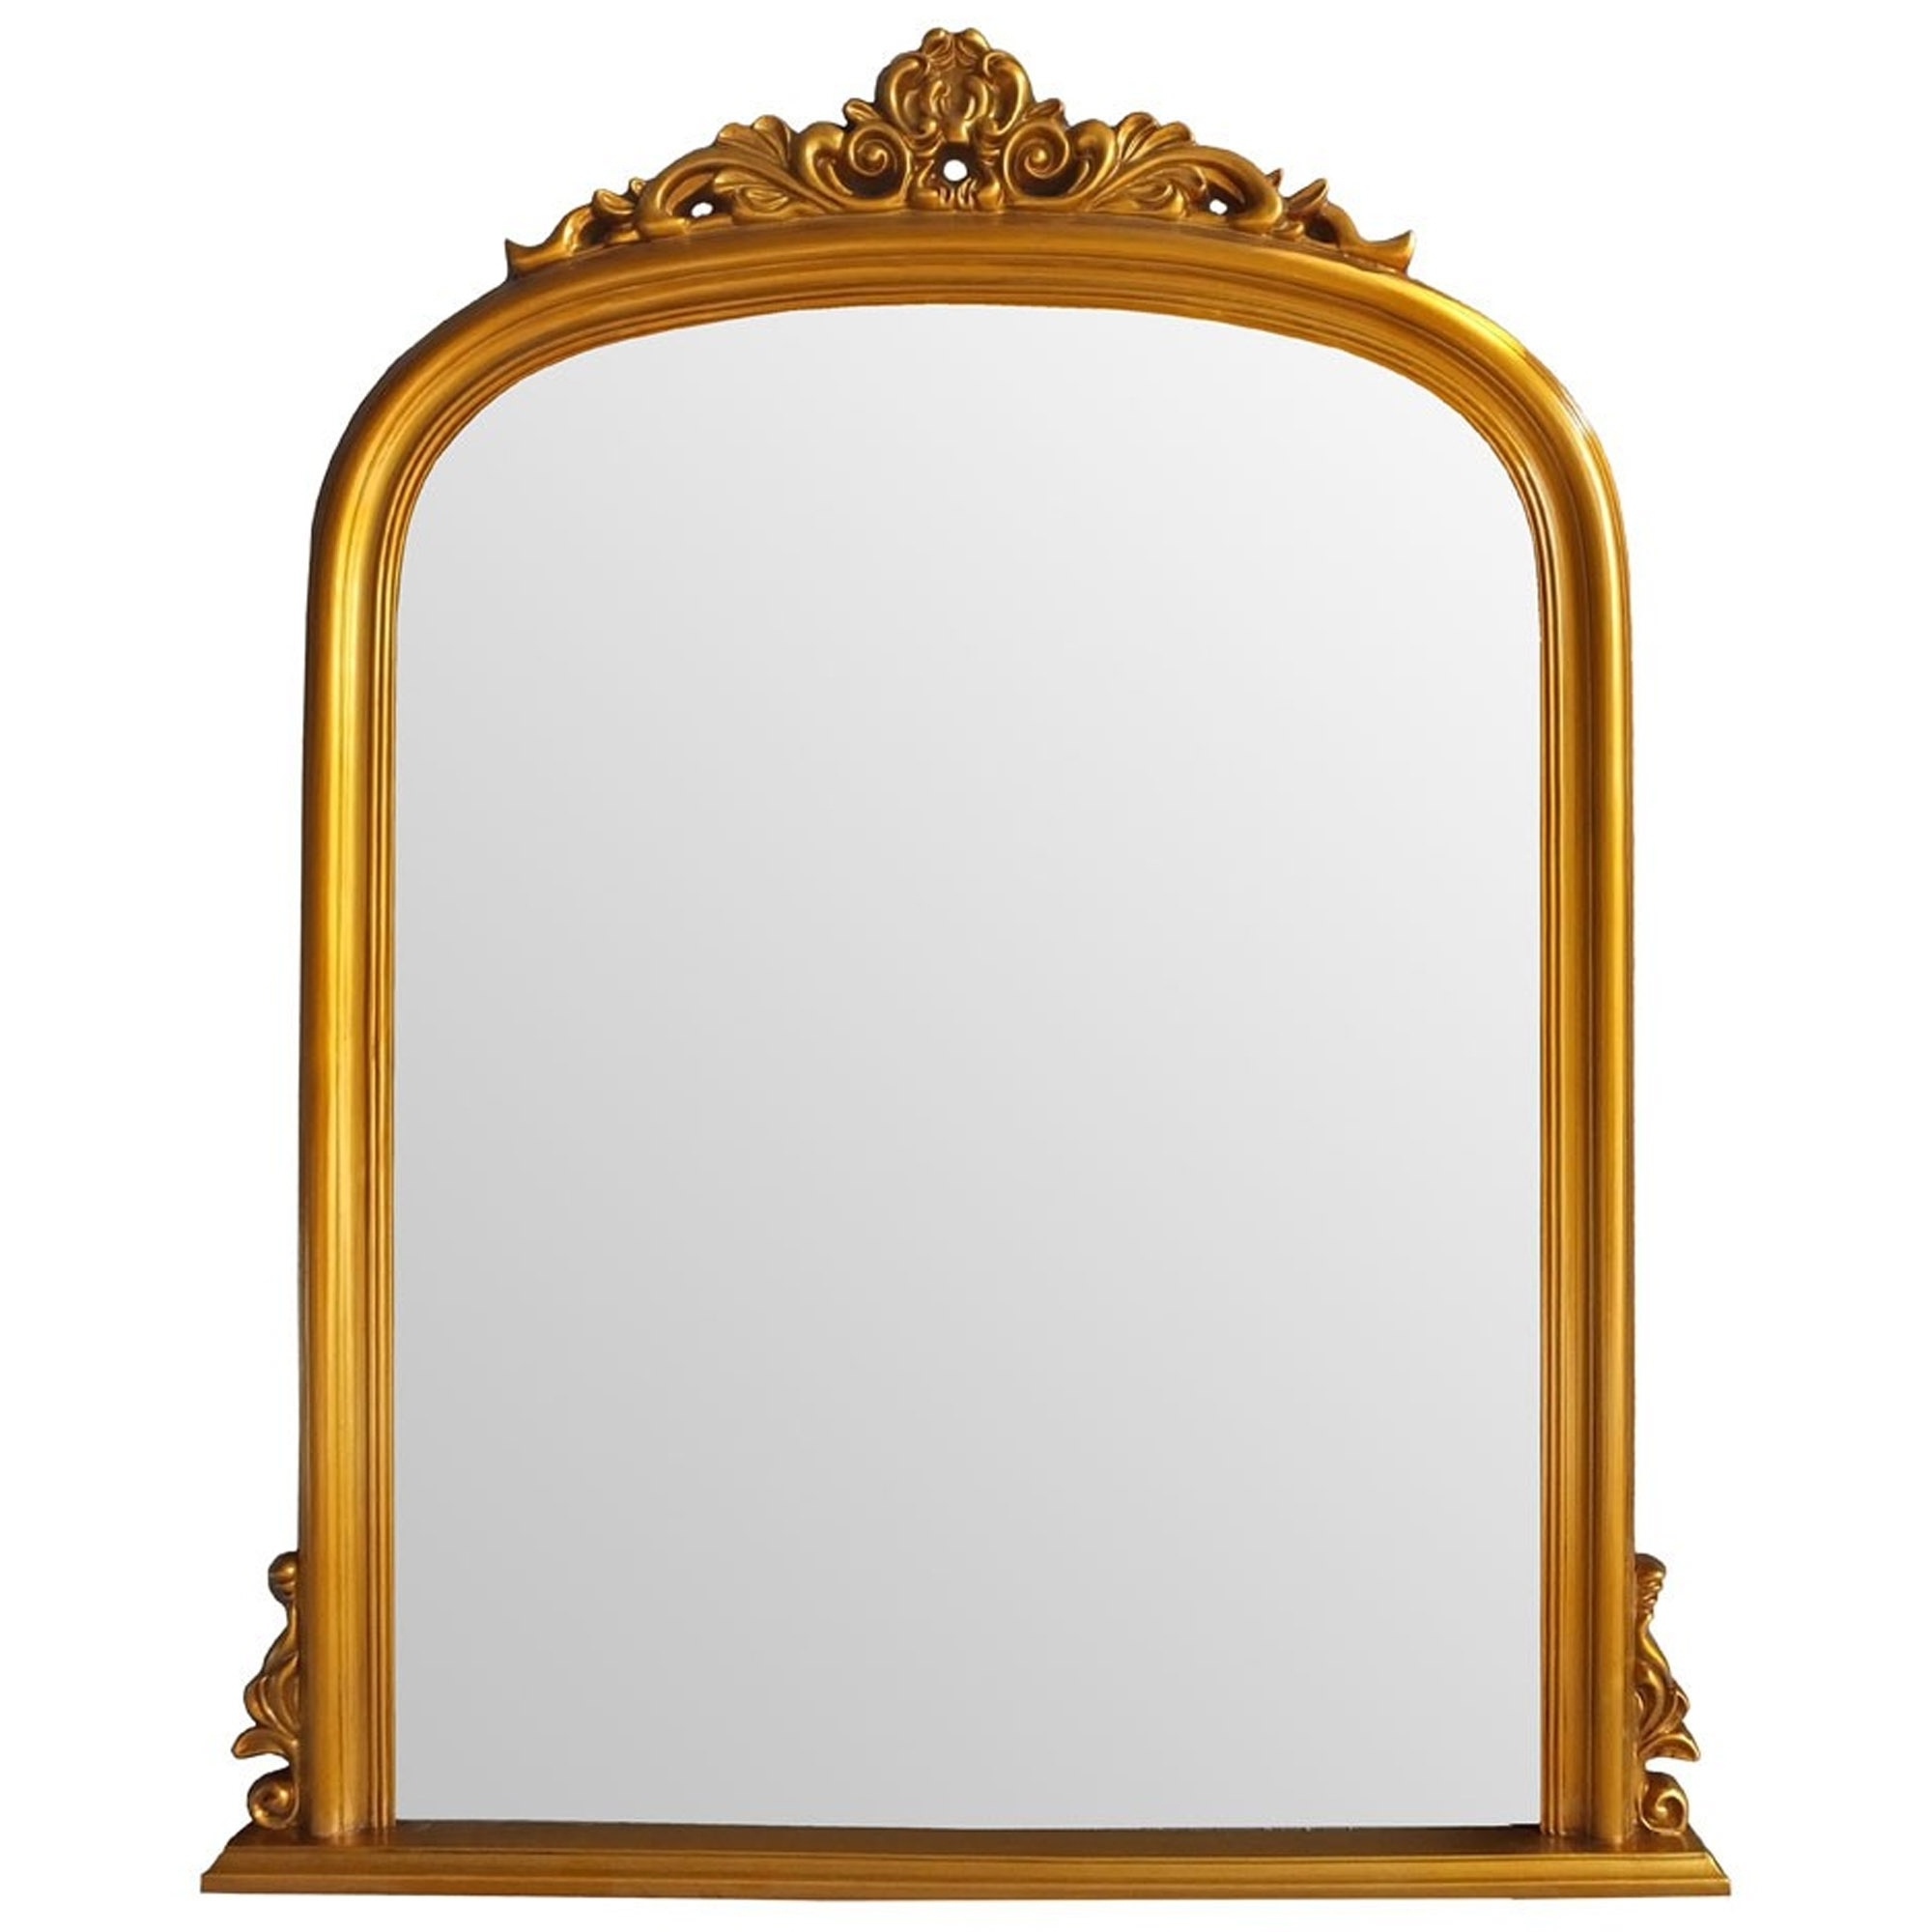 Popular Antique French Style Gold Henrietta Wall Mirror Regarding Gold Wall Mirrors (View 18 of 20)